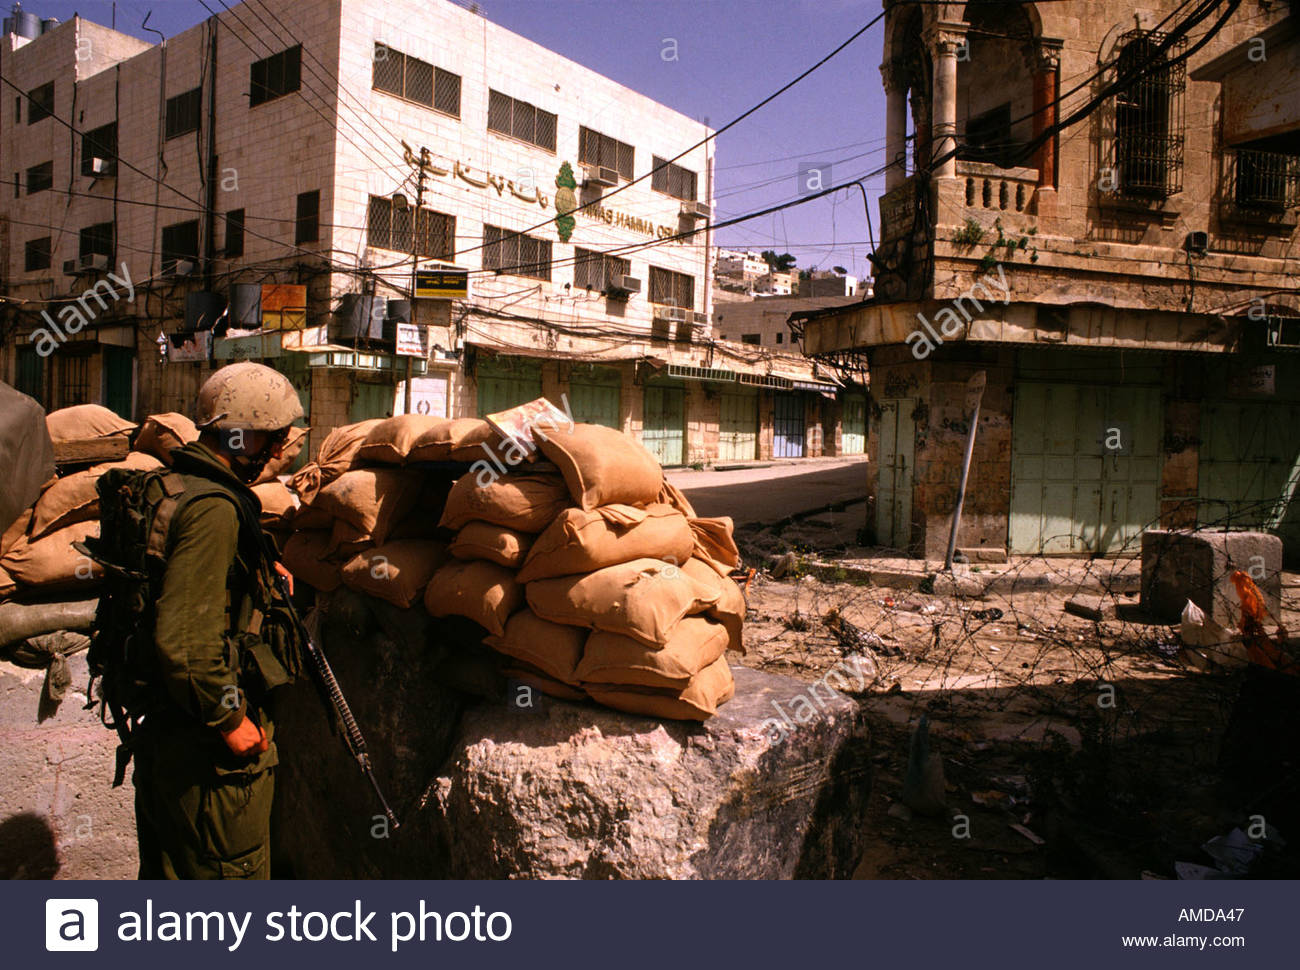 An Israeli army position in the closed Arab market at the old city of Hebron West Bank Israel - Stock Image